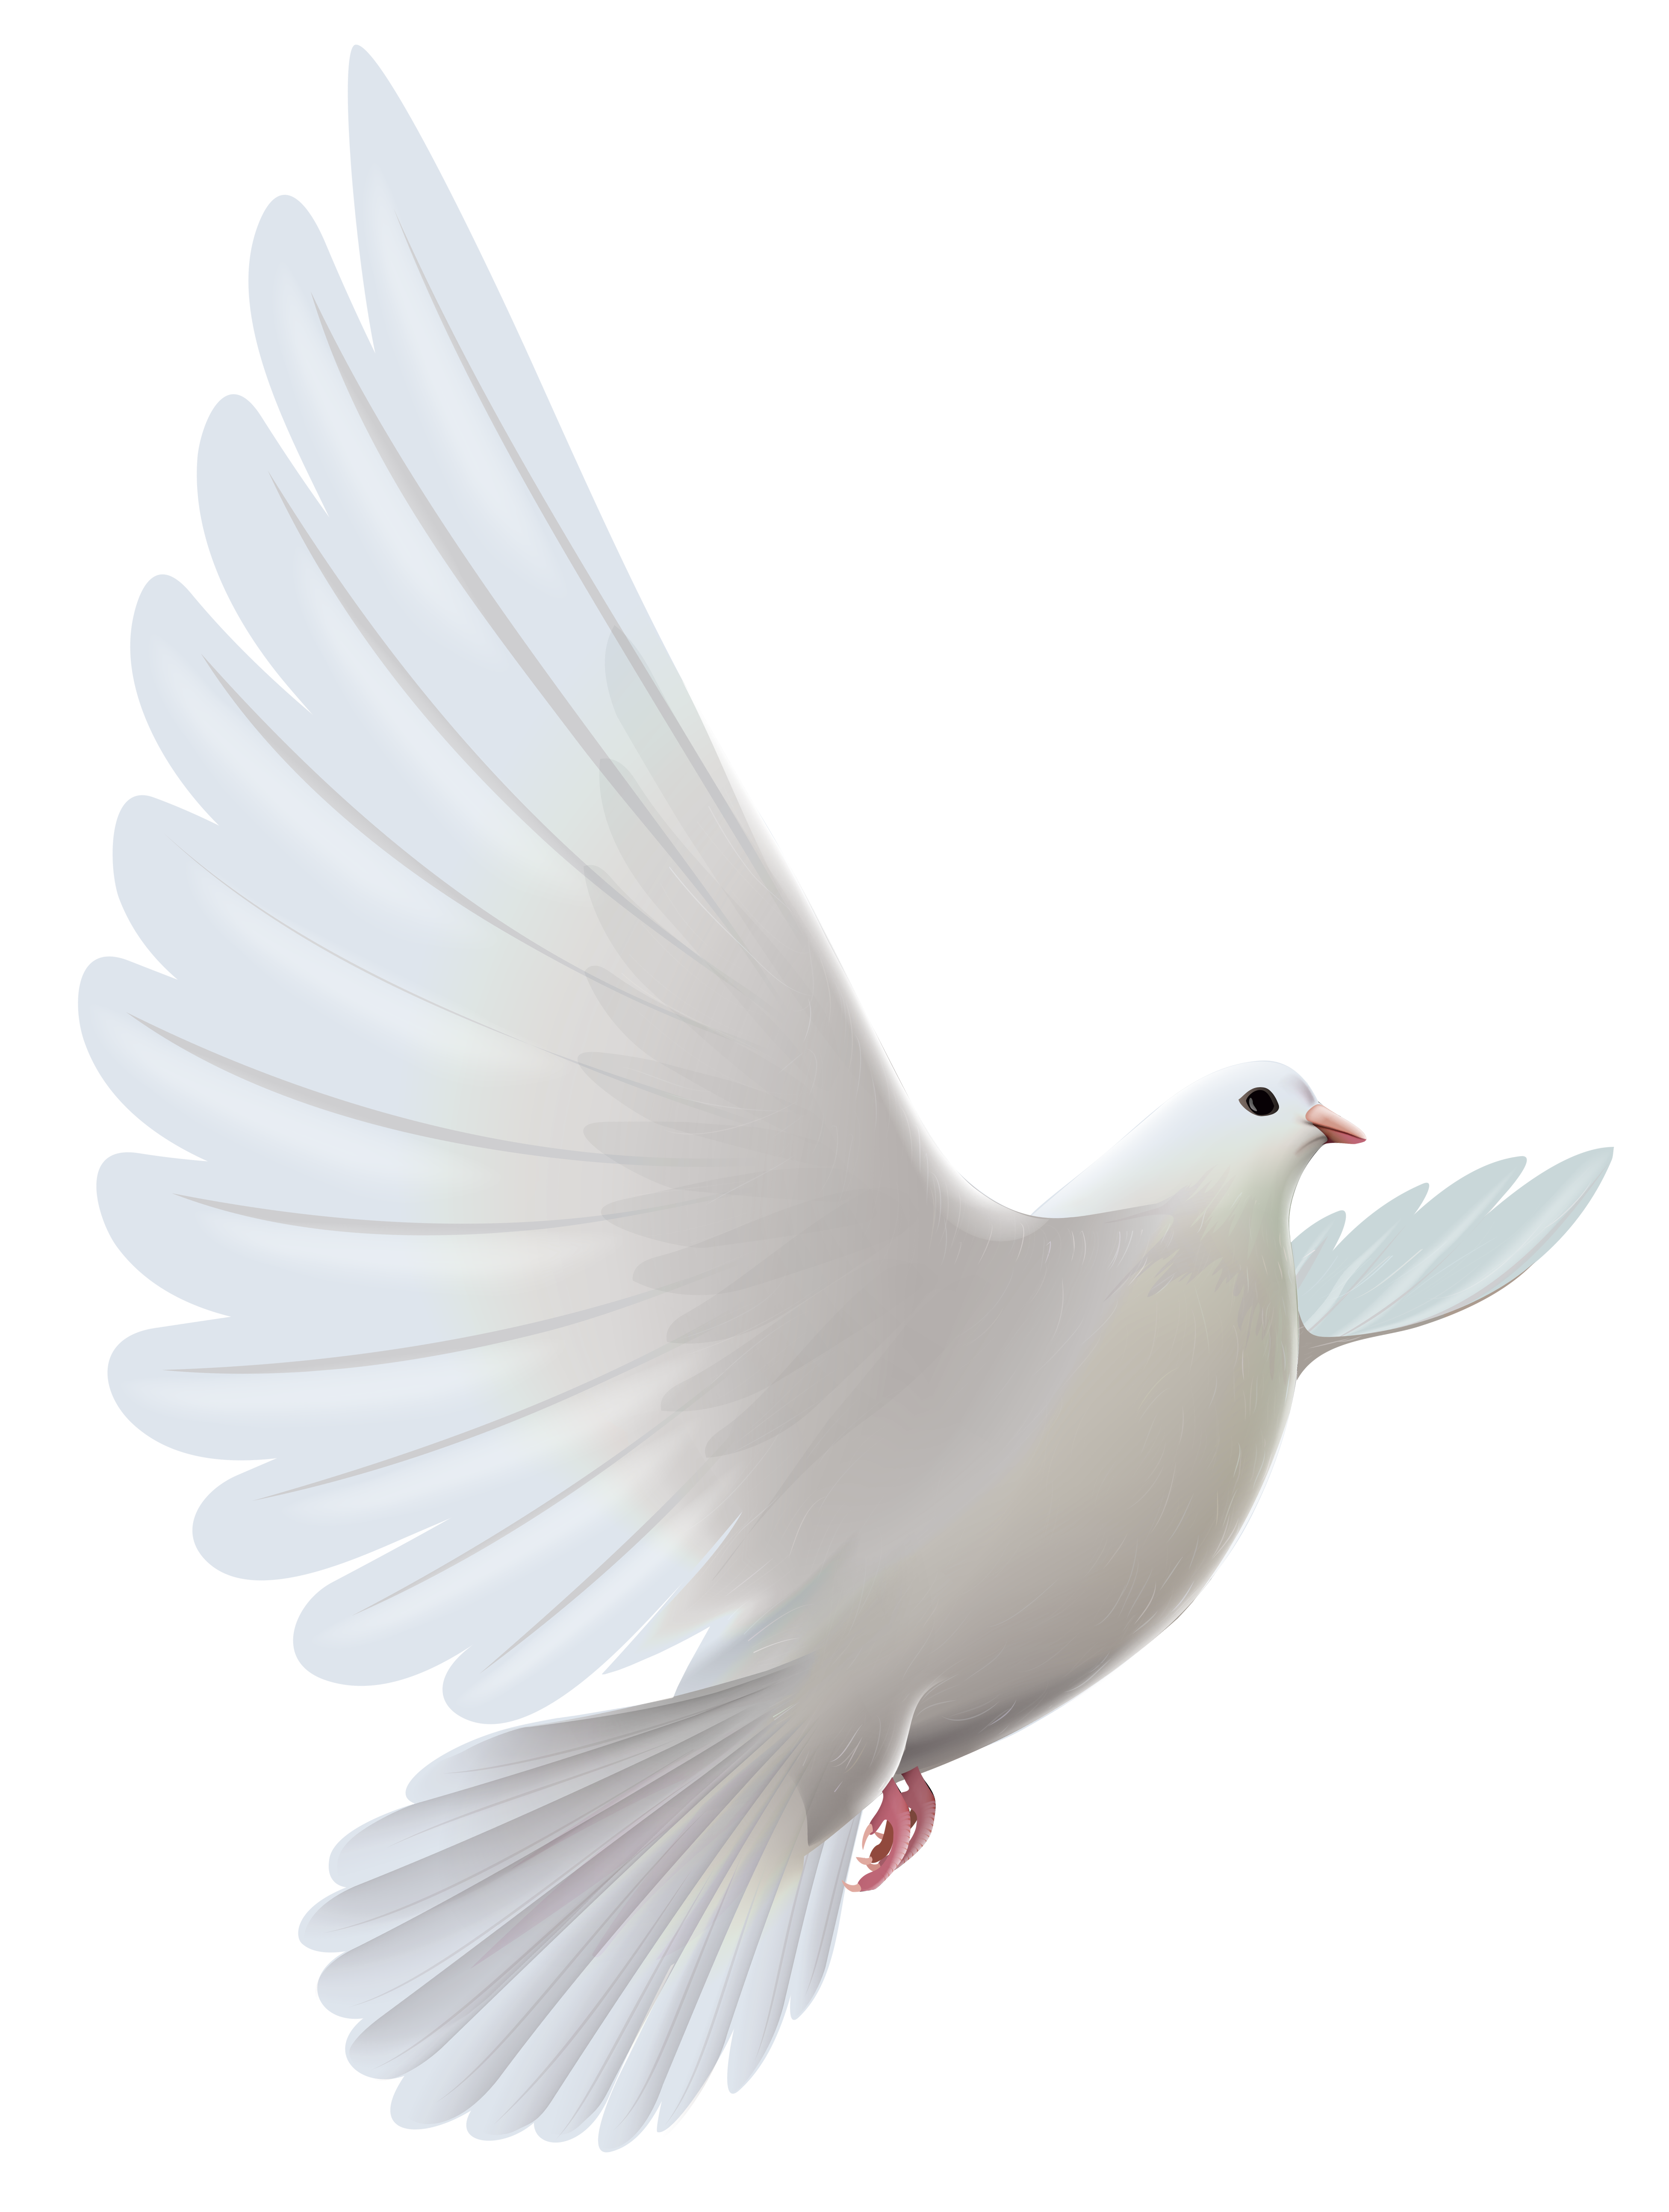 White Dove Transparent Png Clipart Dove Pictures Dove Images Light Background Images